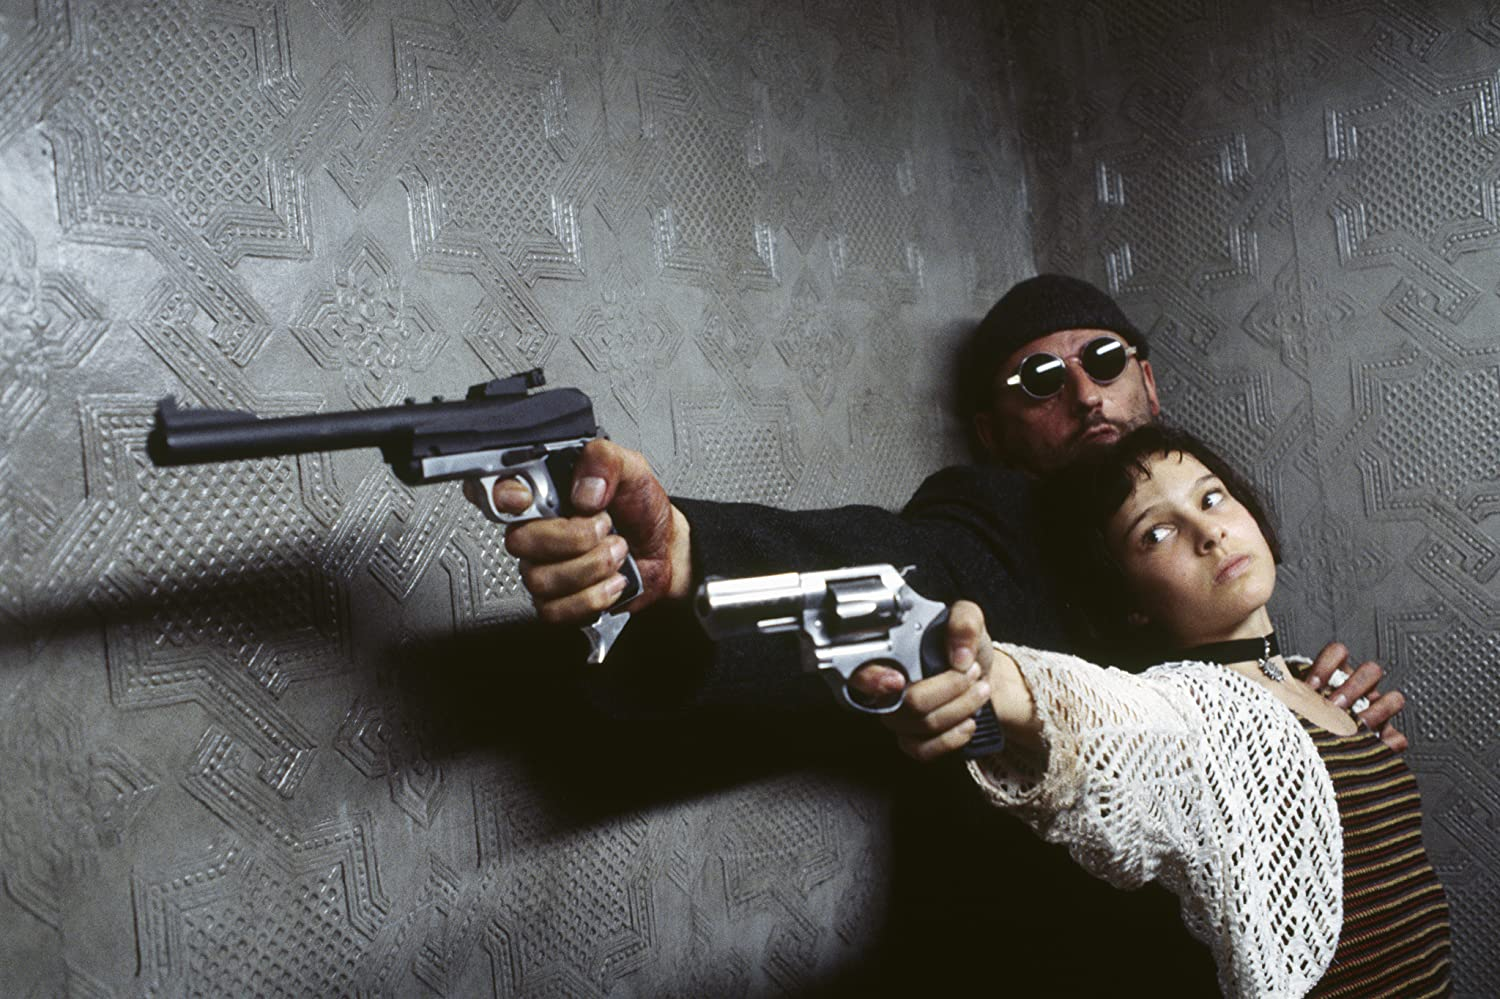 Natalie Portman and Jean Reno in Lon 1994